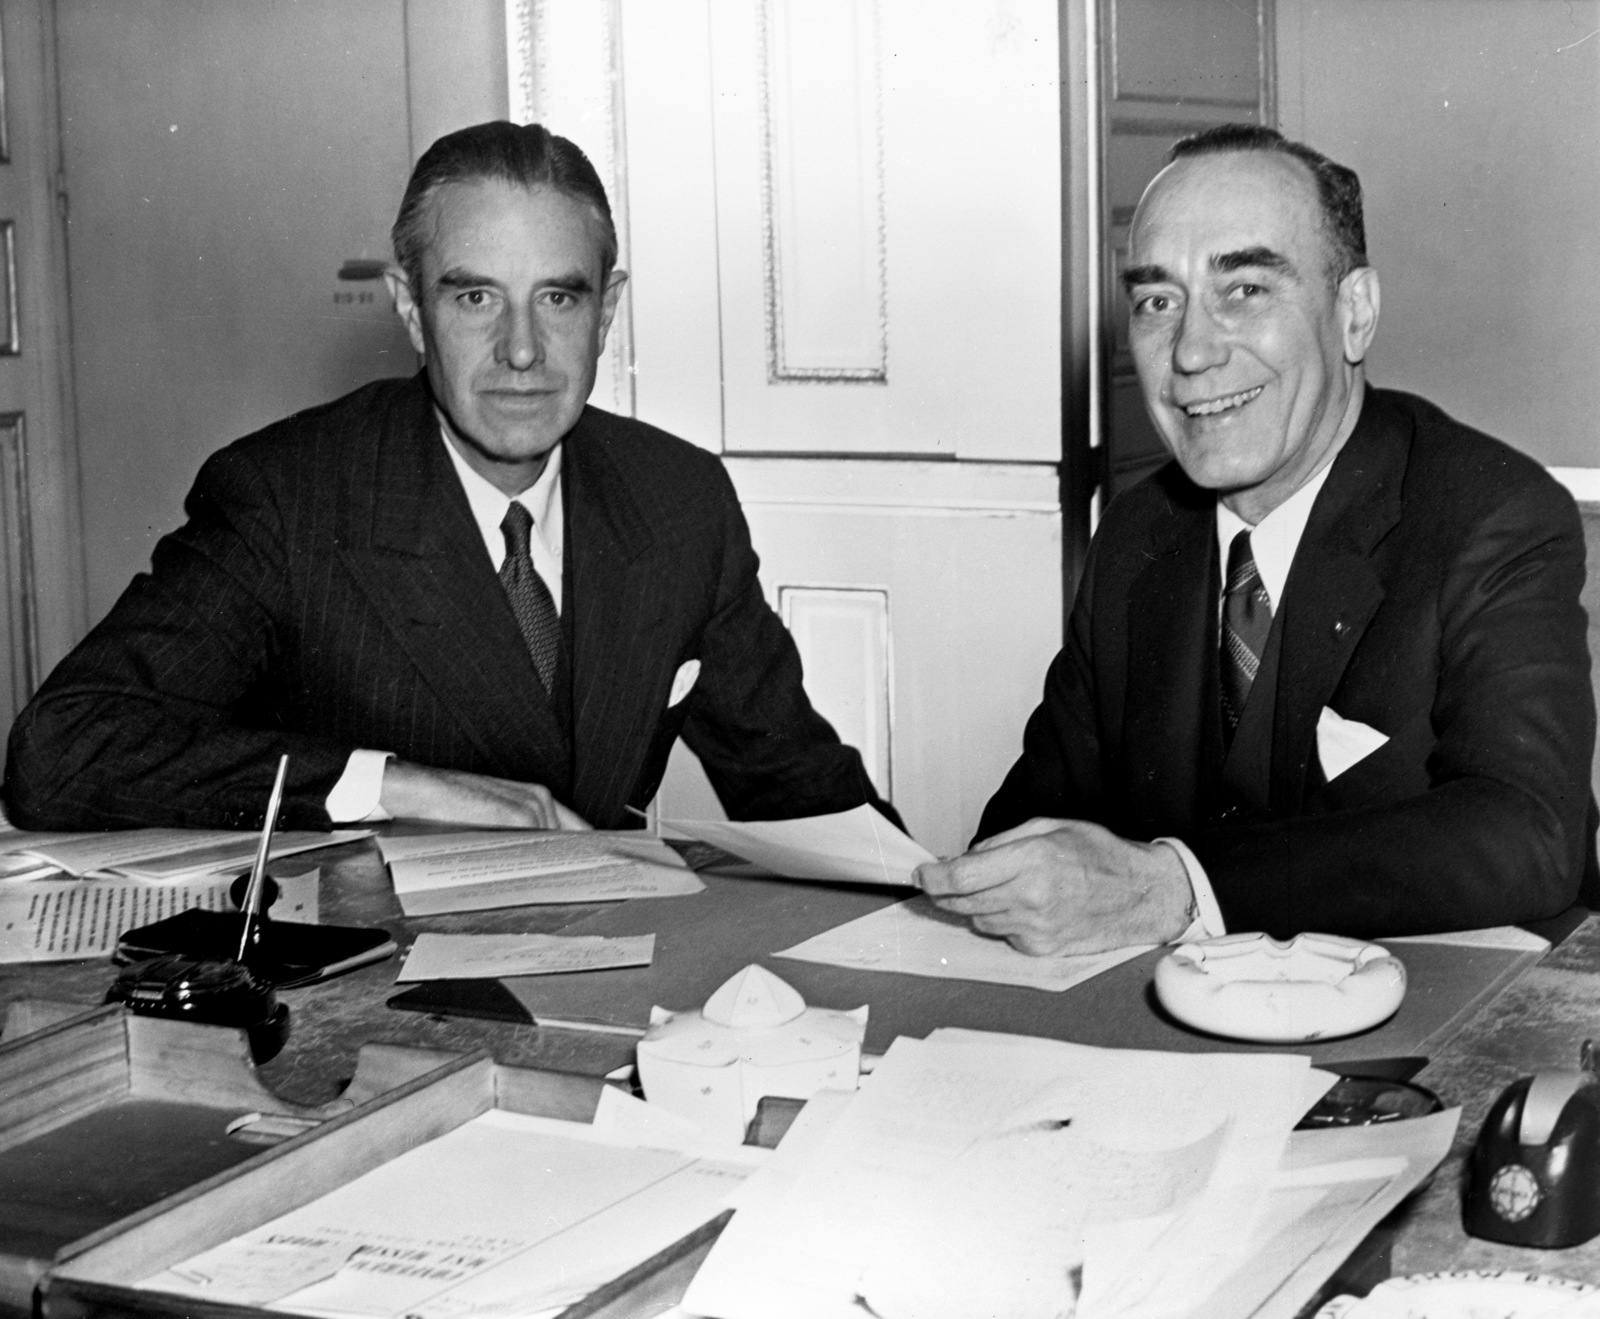 [Wm. Draper and A. Harriman, Pictures taken by Jackie Martin]